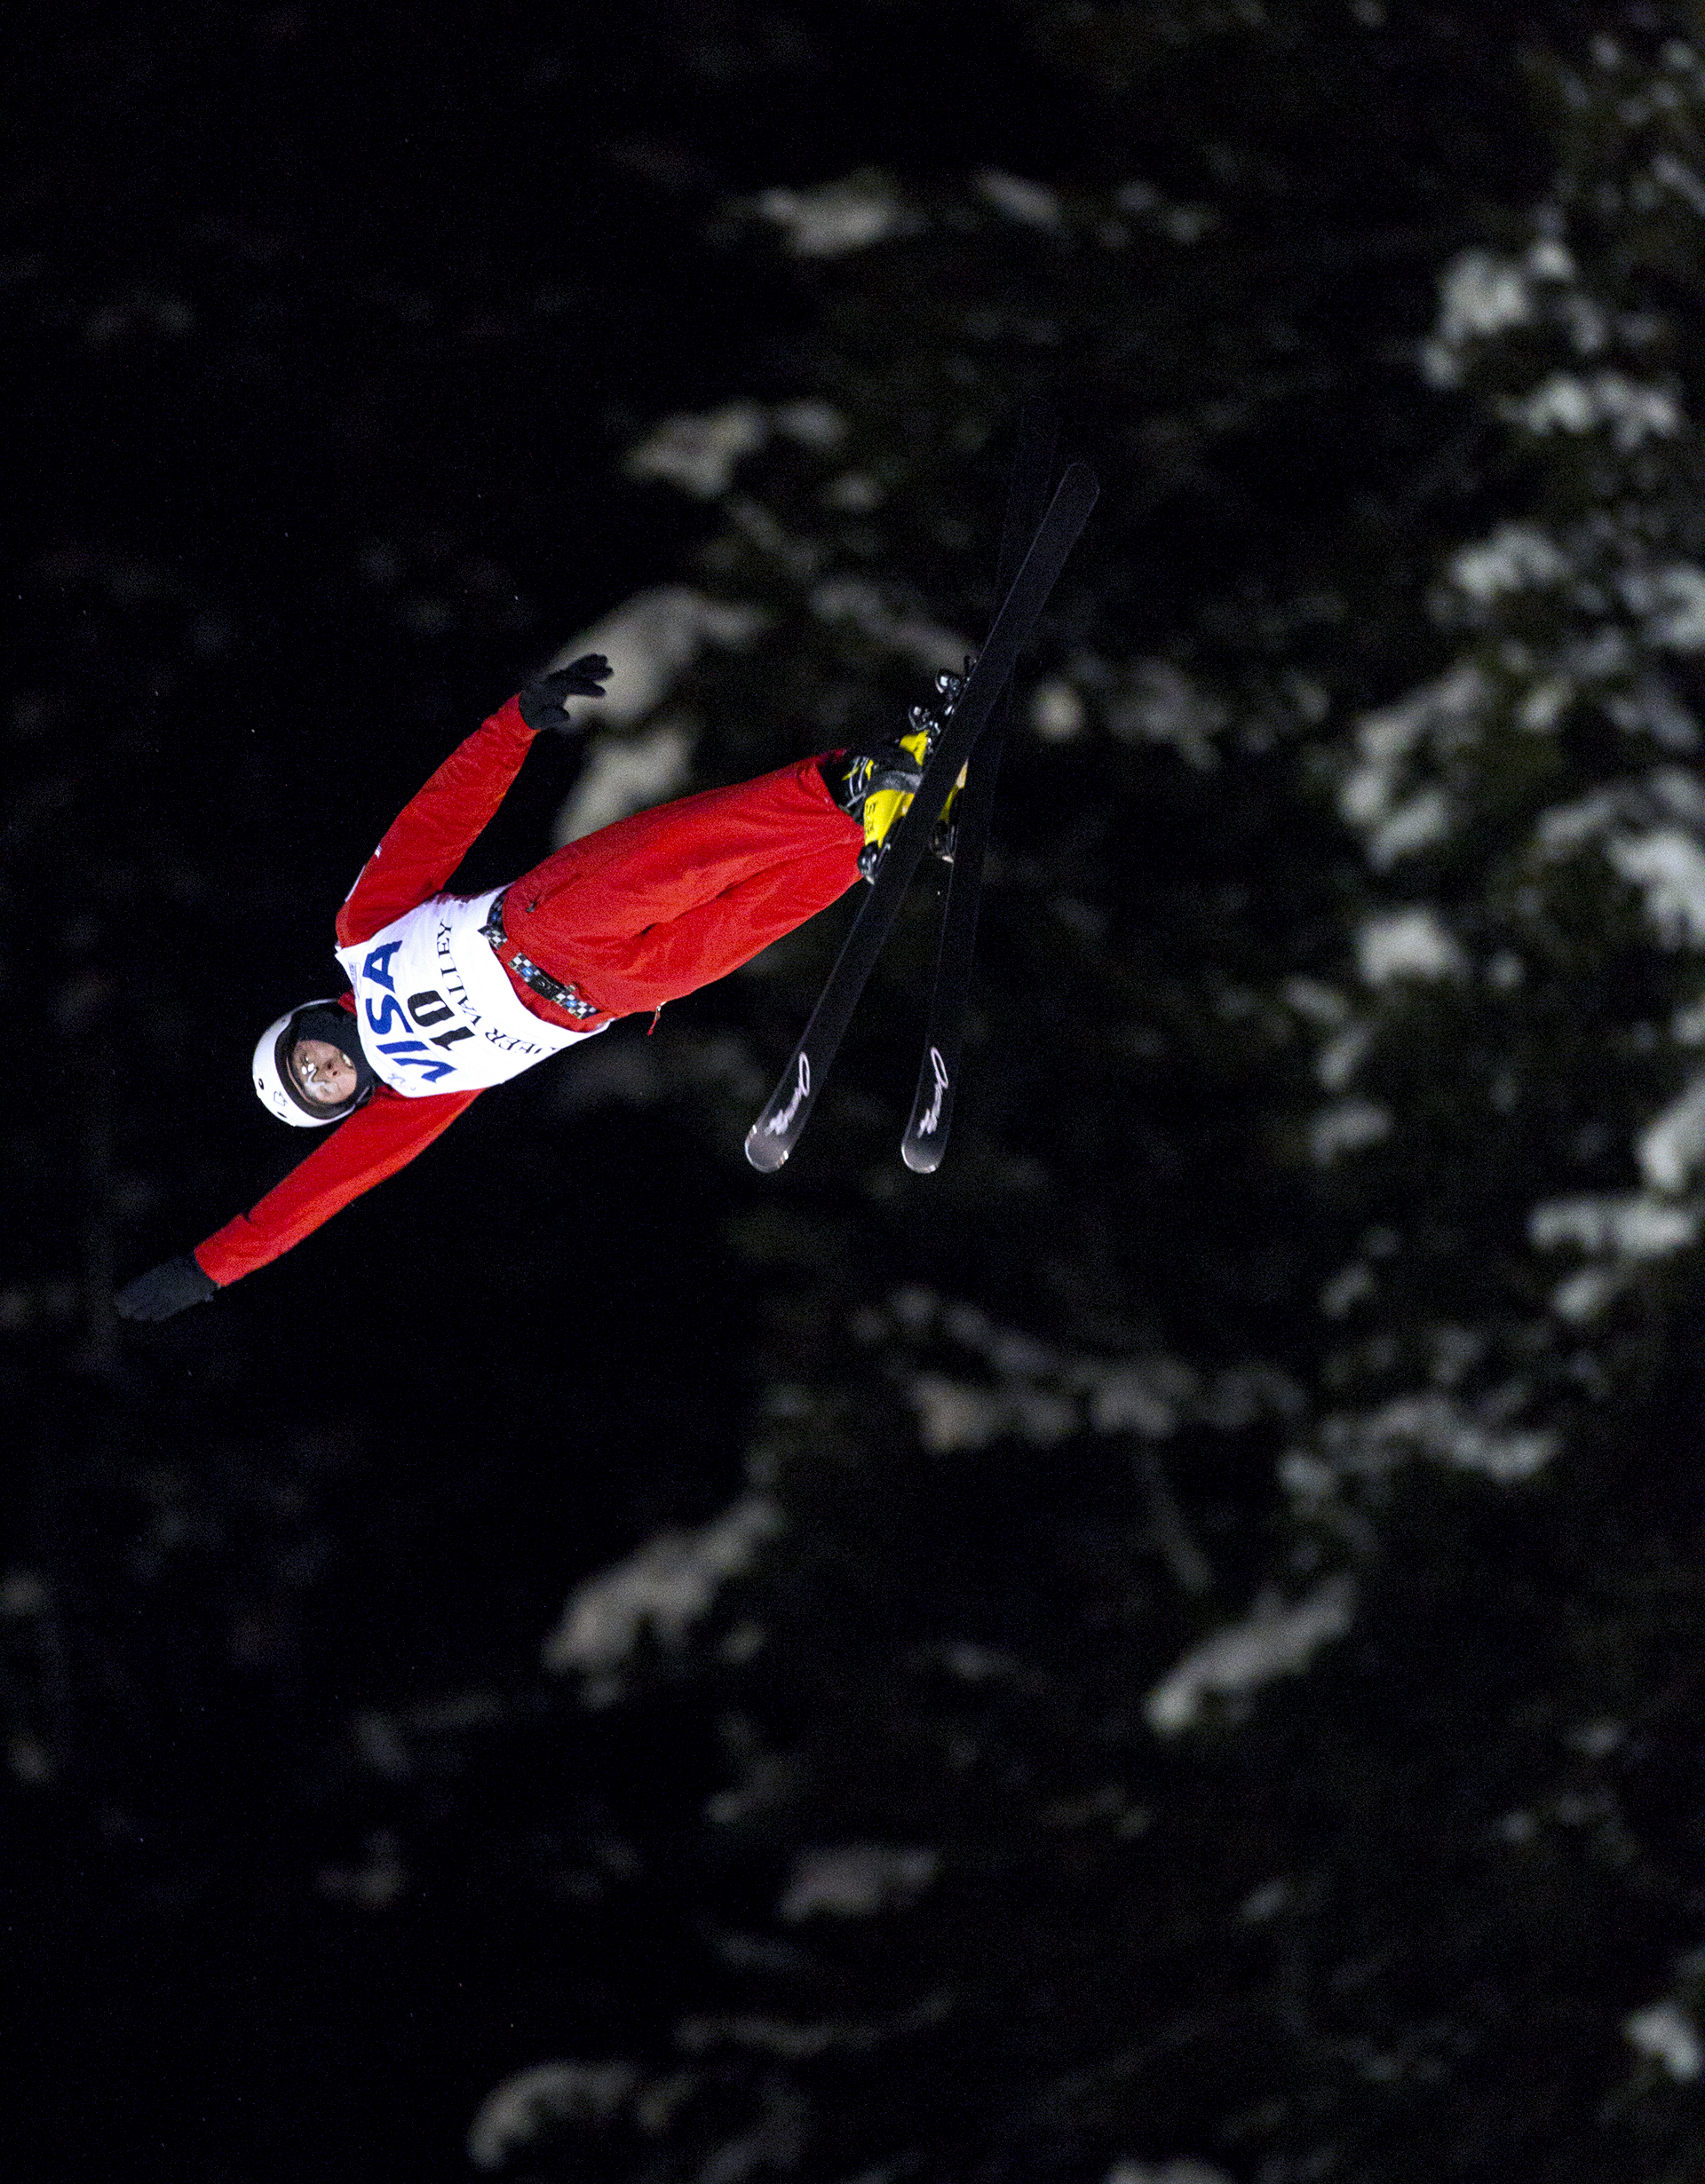 Petr Medulich of Russia extends his arm during his second and final jump in the men's finals of the Visa Freestyle International Aerials World Cup at Deer Valley Resort Friday, Feb. 5, 2016 in Park City, Utah. The jump registered a score of 128.05 with the judges and would solidify Medulich first place in the event and would propel him to first overall in the world.